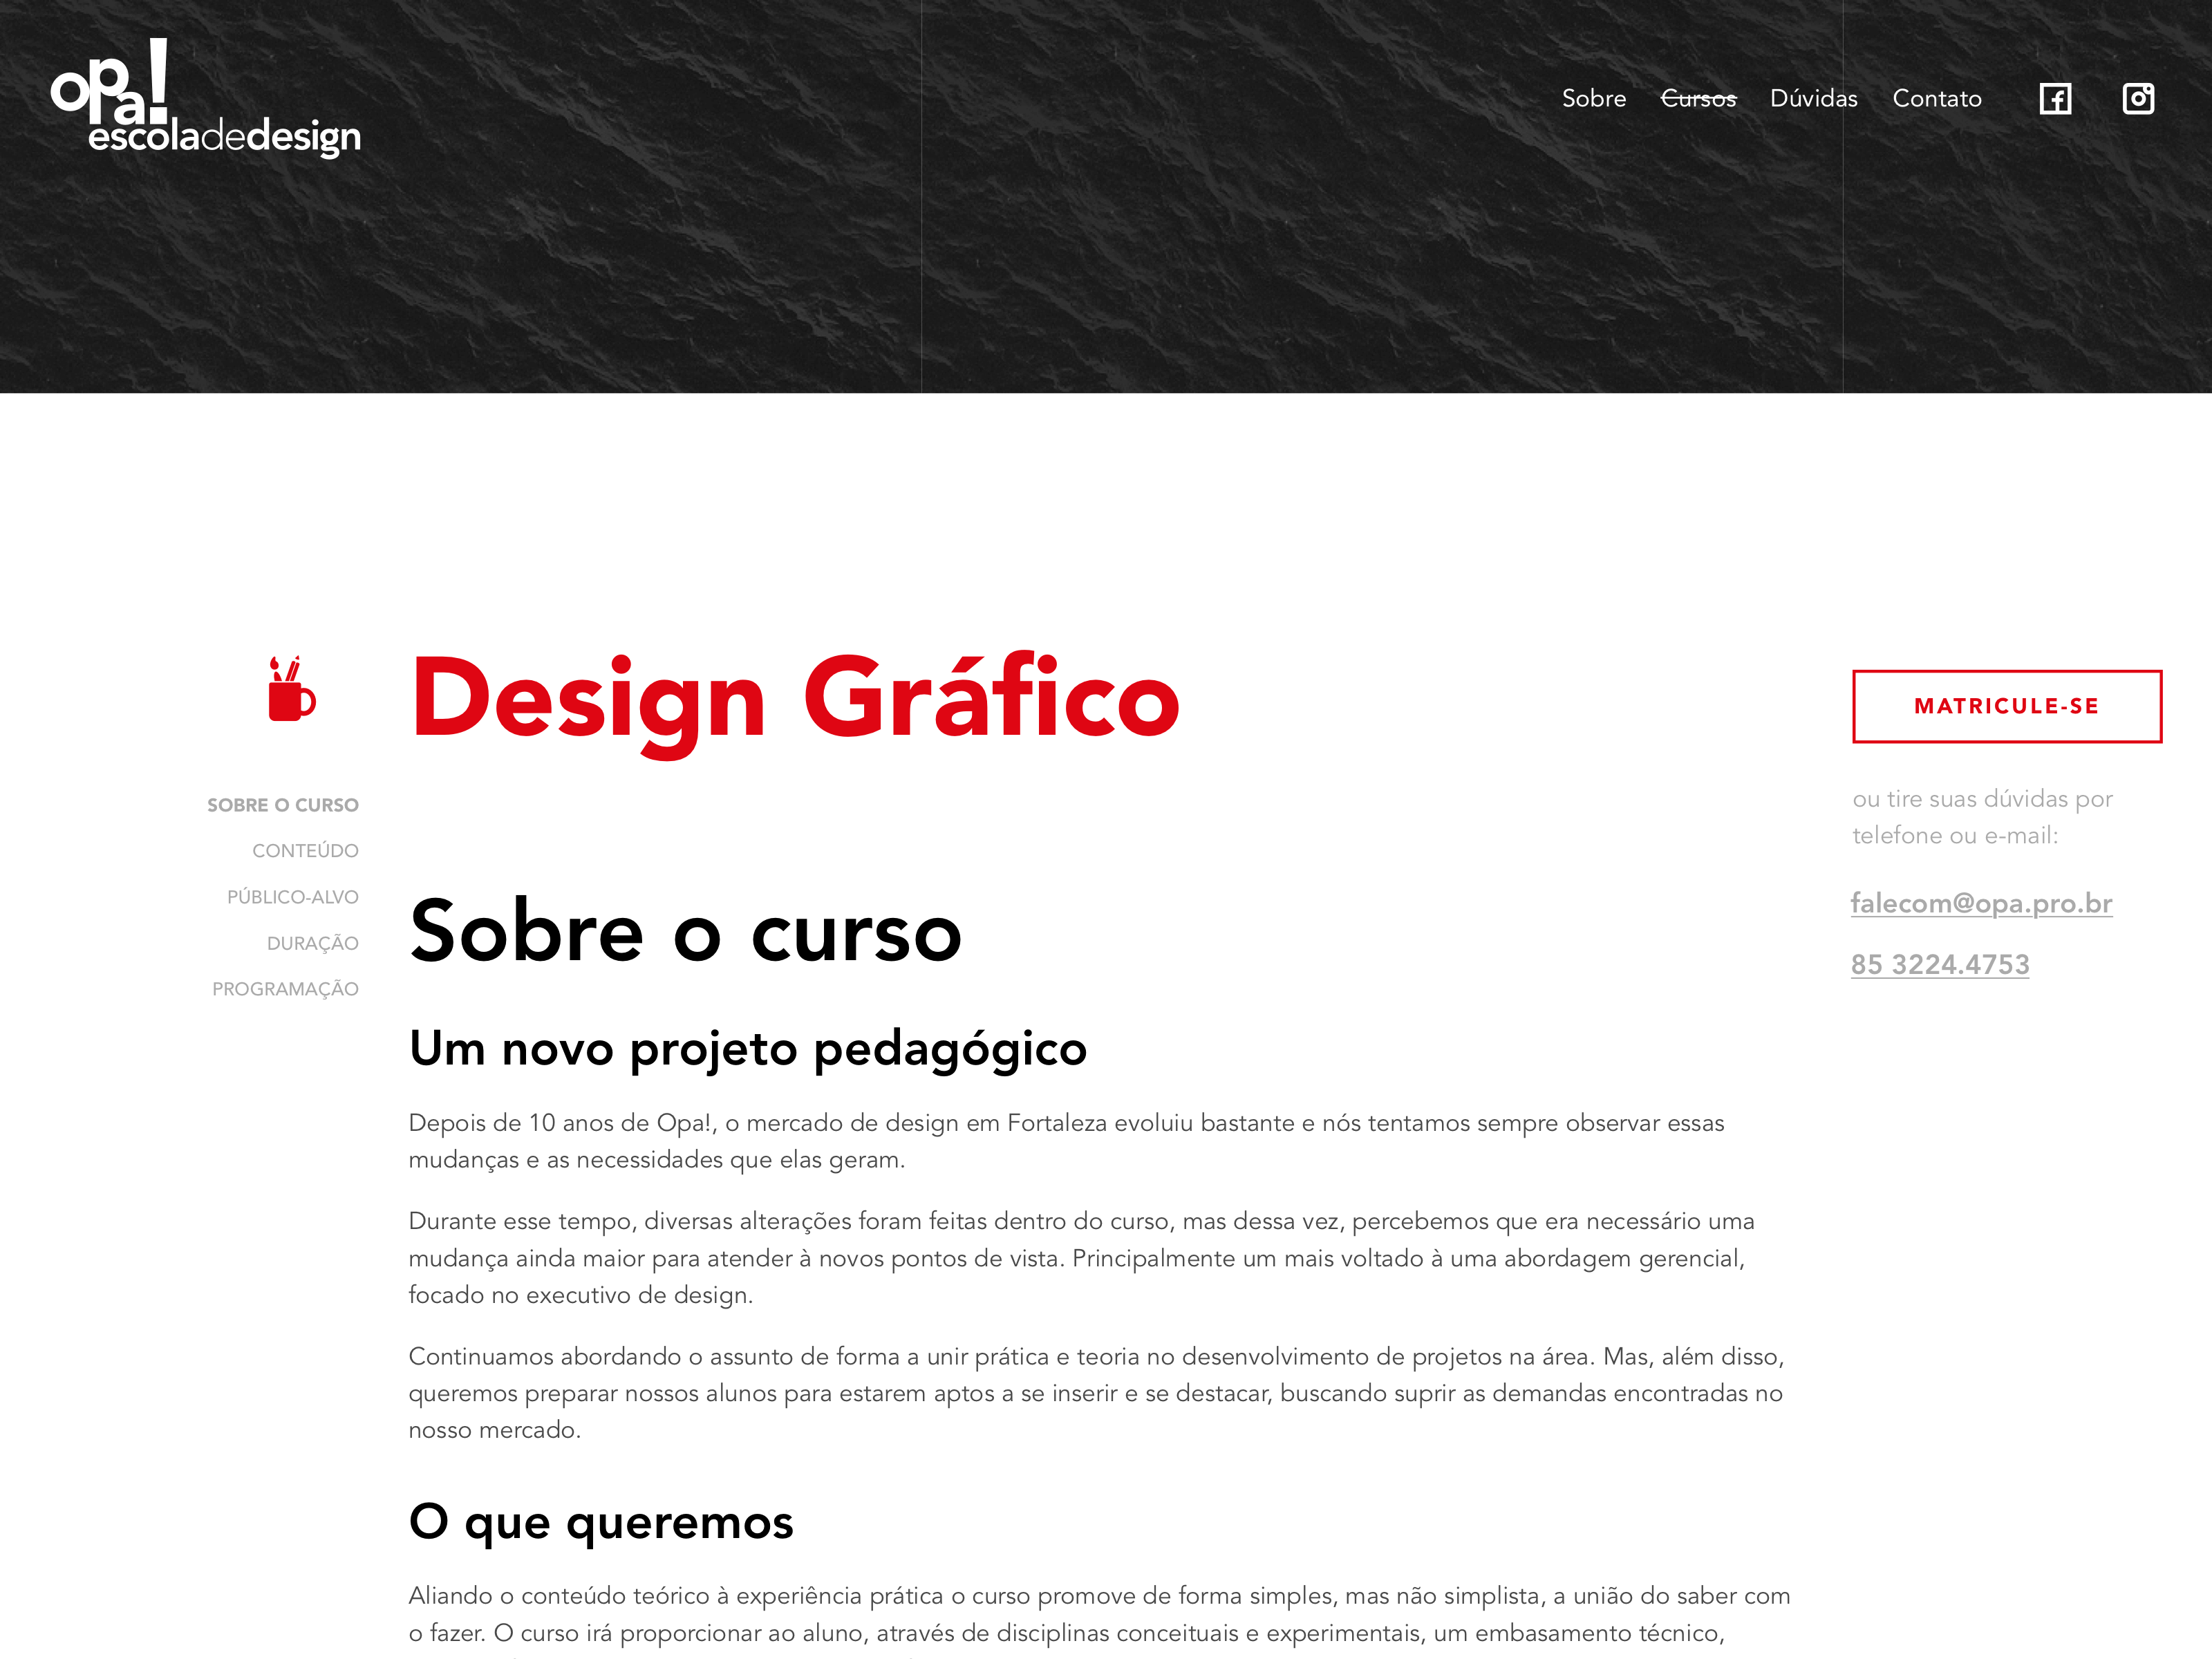 Start of the courses page with information from the Graphic Design course